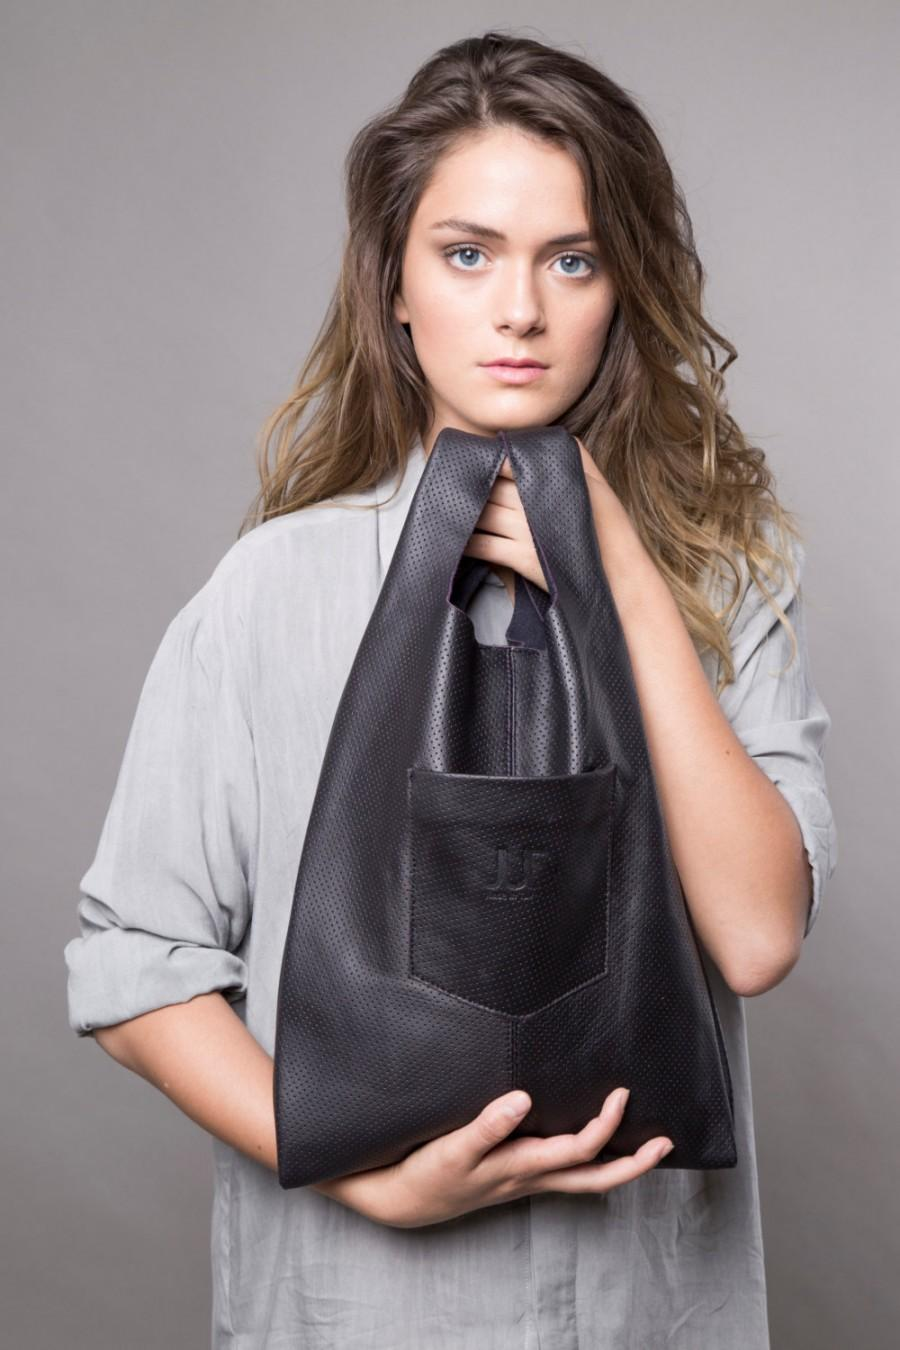 Boda - Black leather tote - women leather bag SALE soft leather handbag - leather shoulder bag - shopper bag - black leather bag